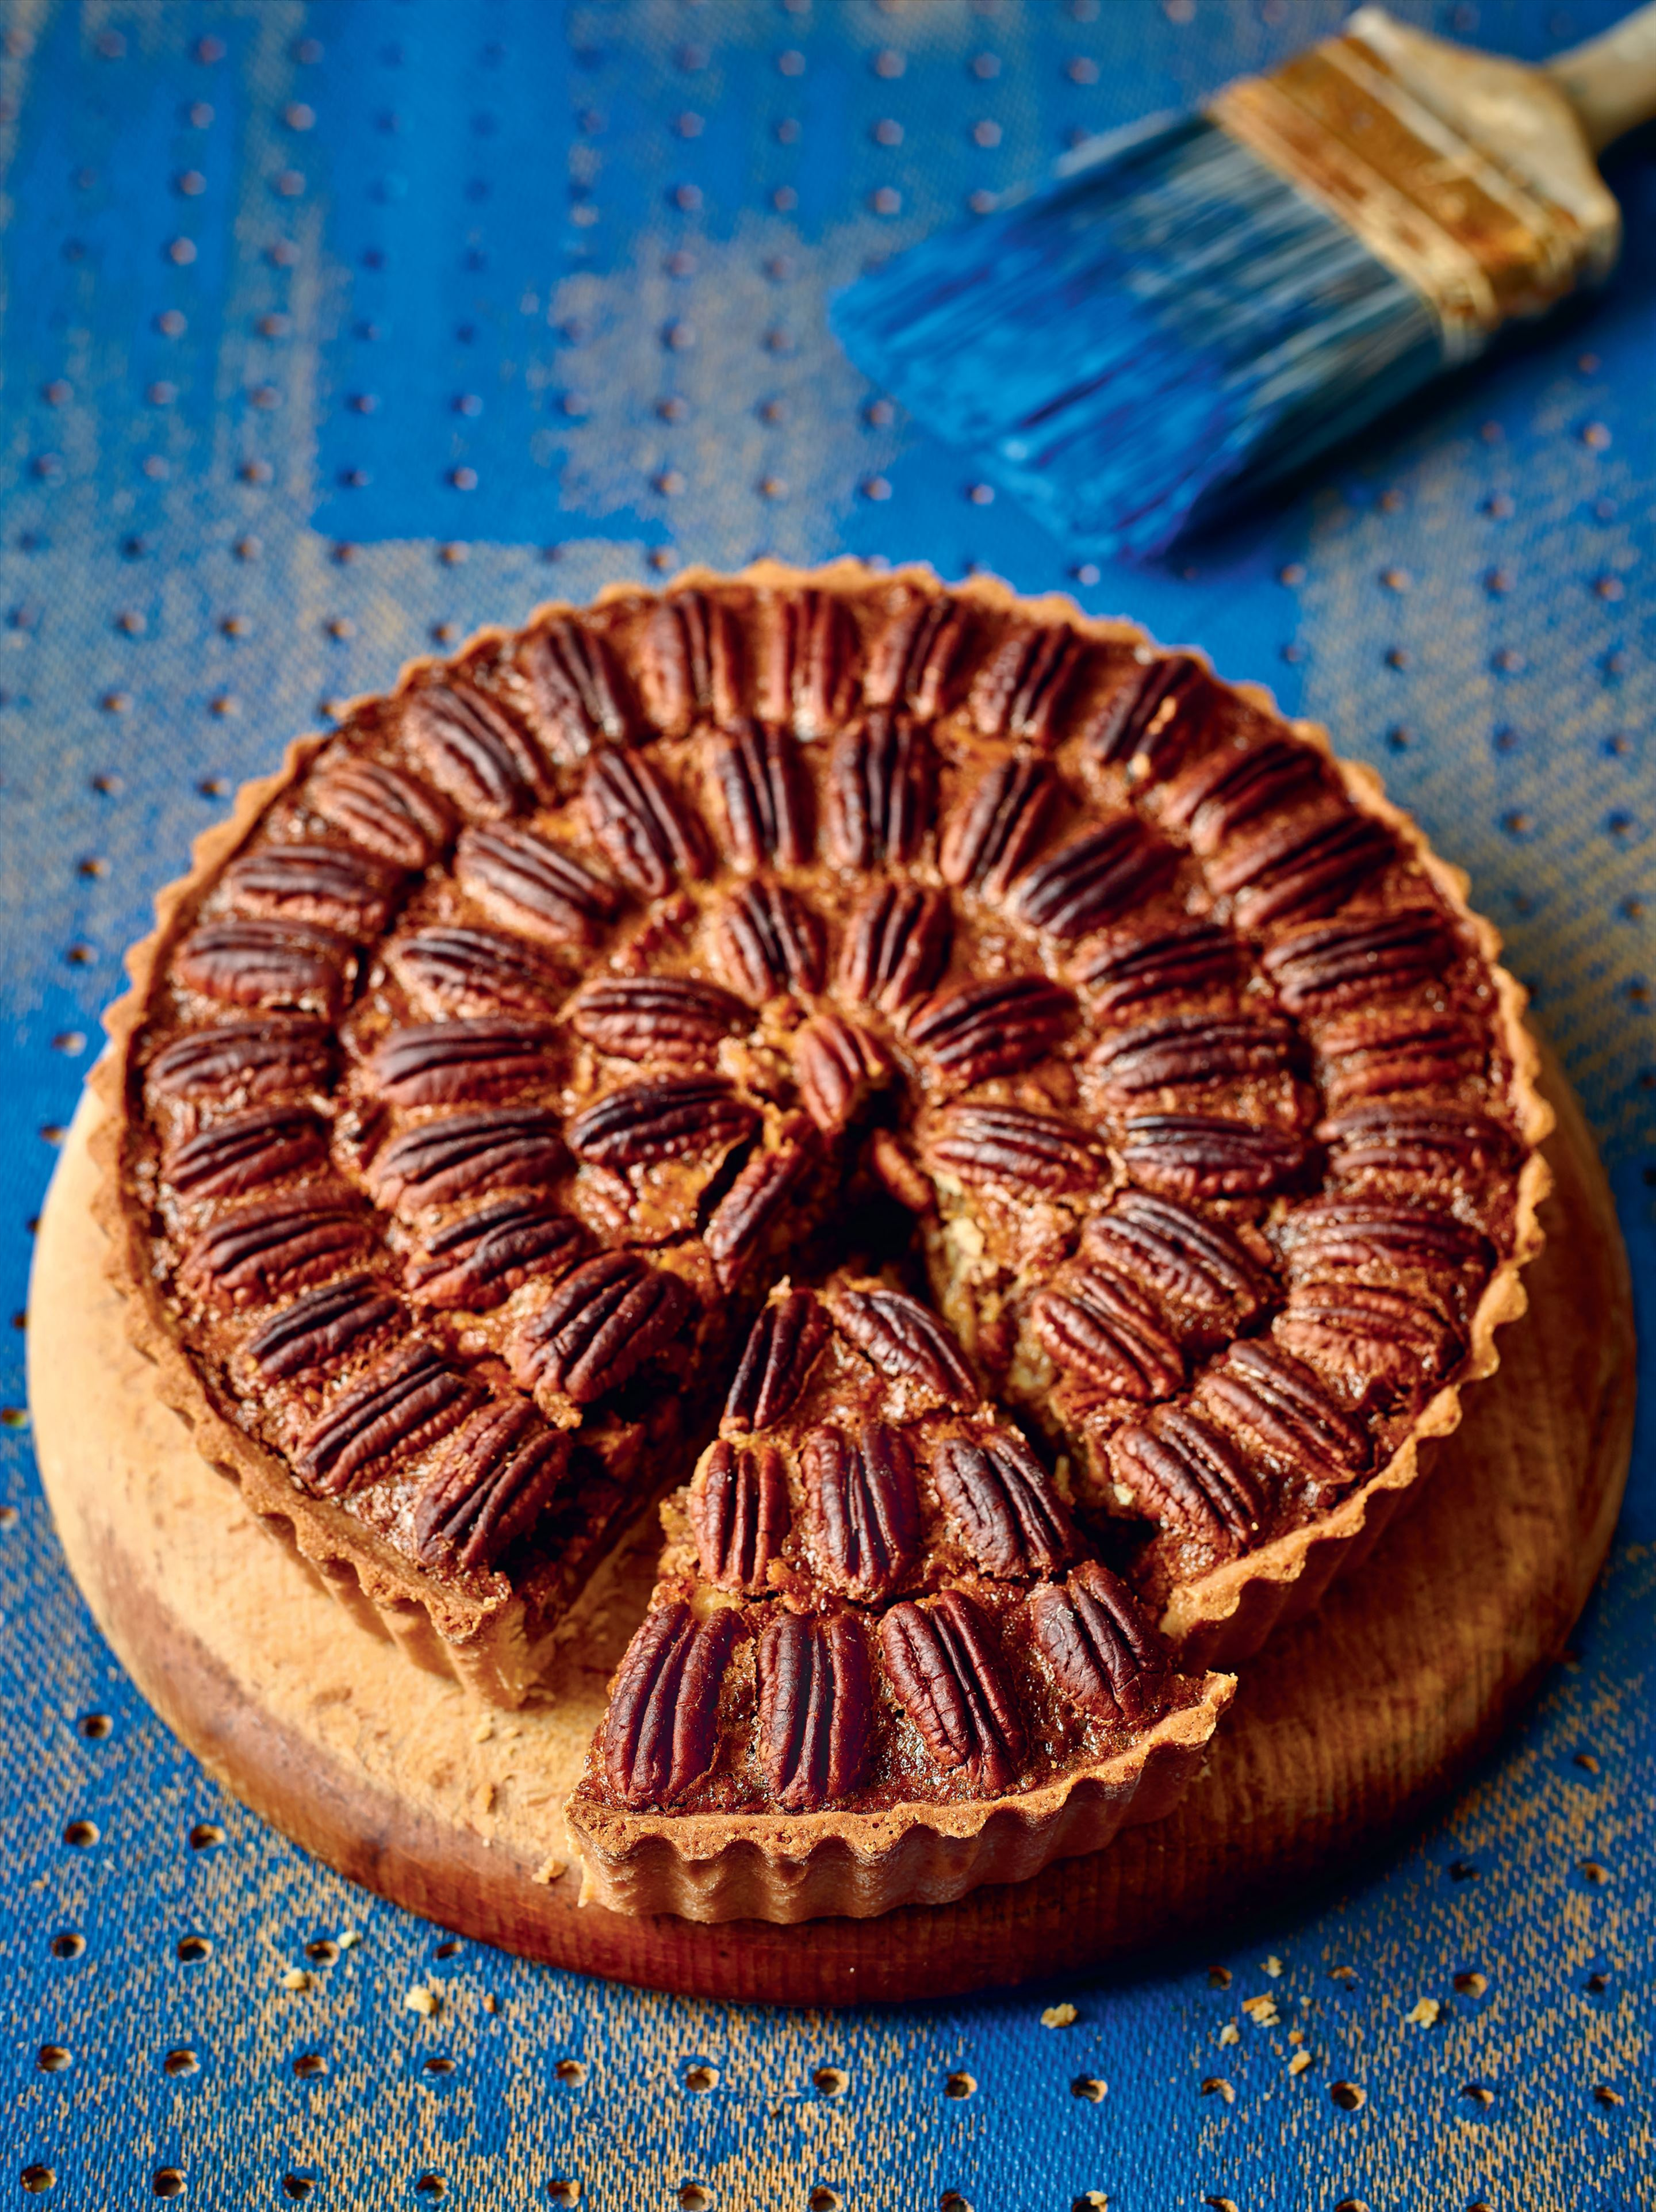 Pecan pie with spiced rum